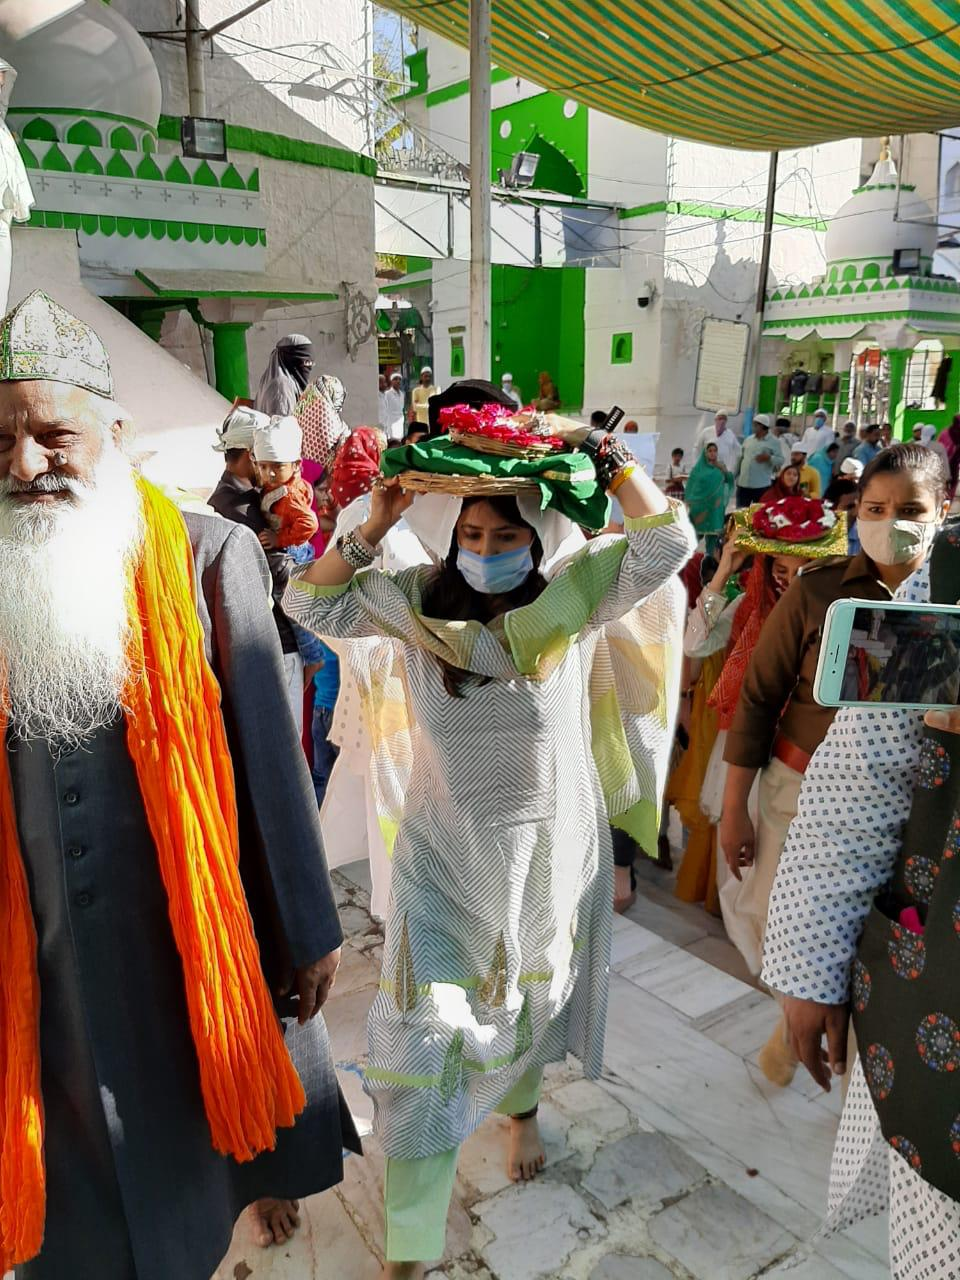 Blessings-of-Ekta-Kapoor-Riddhi-Dogra-and-Monica-Dogra-in-Ajmer-Sharif-before-the-launch-of-The-Married-Woman